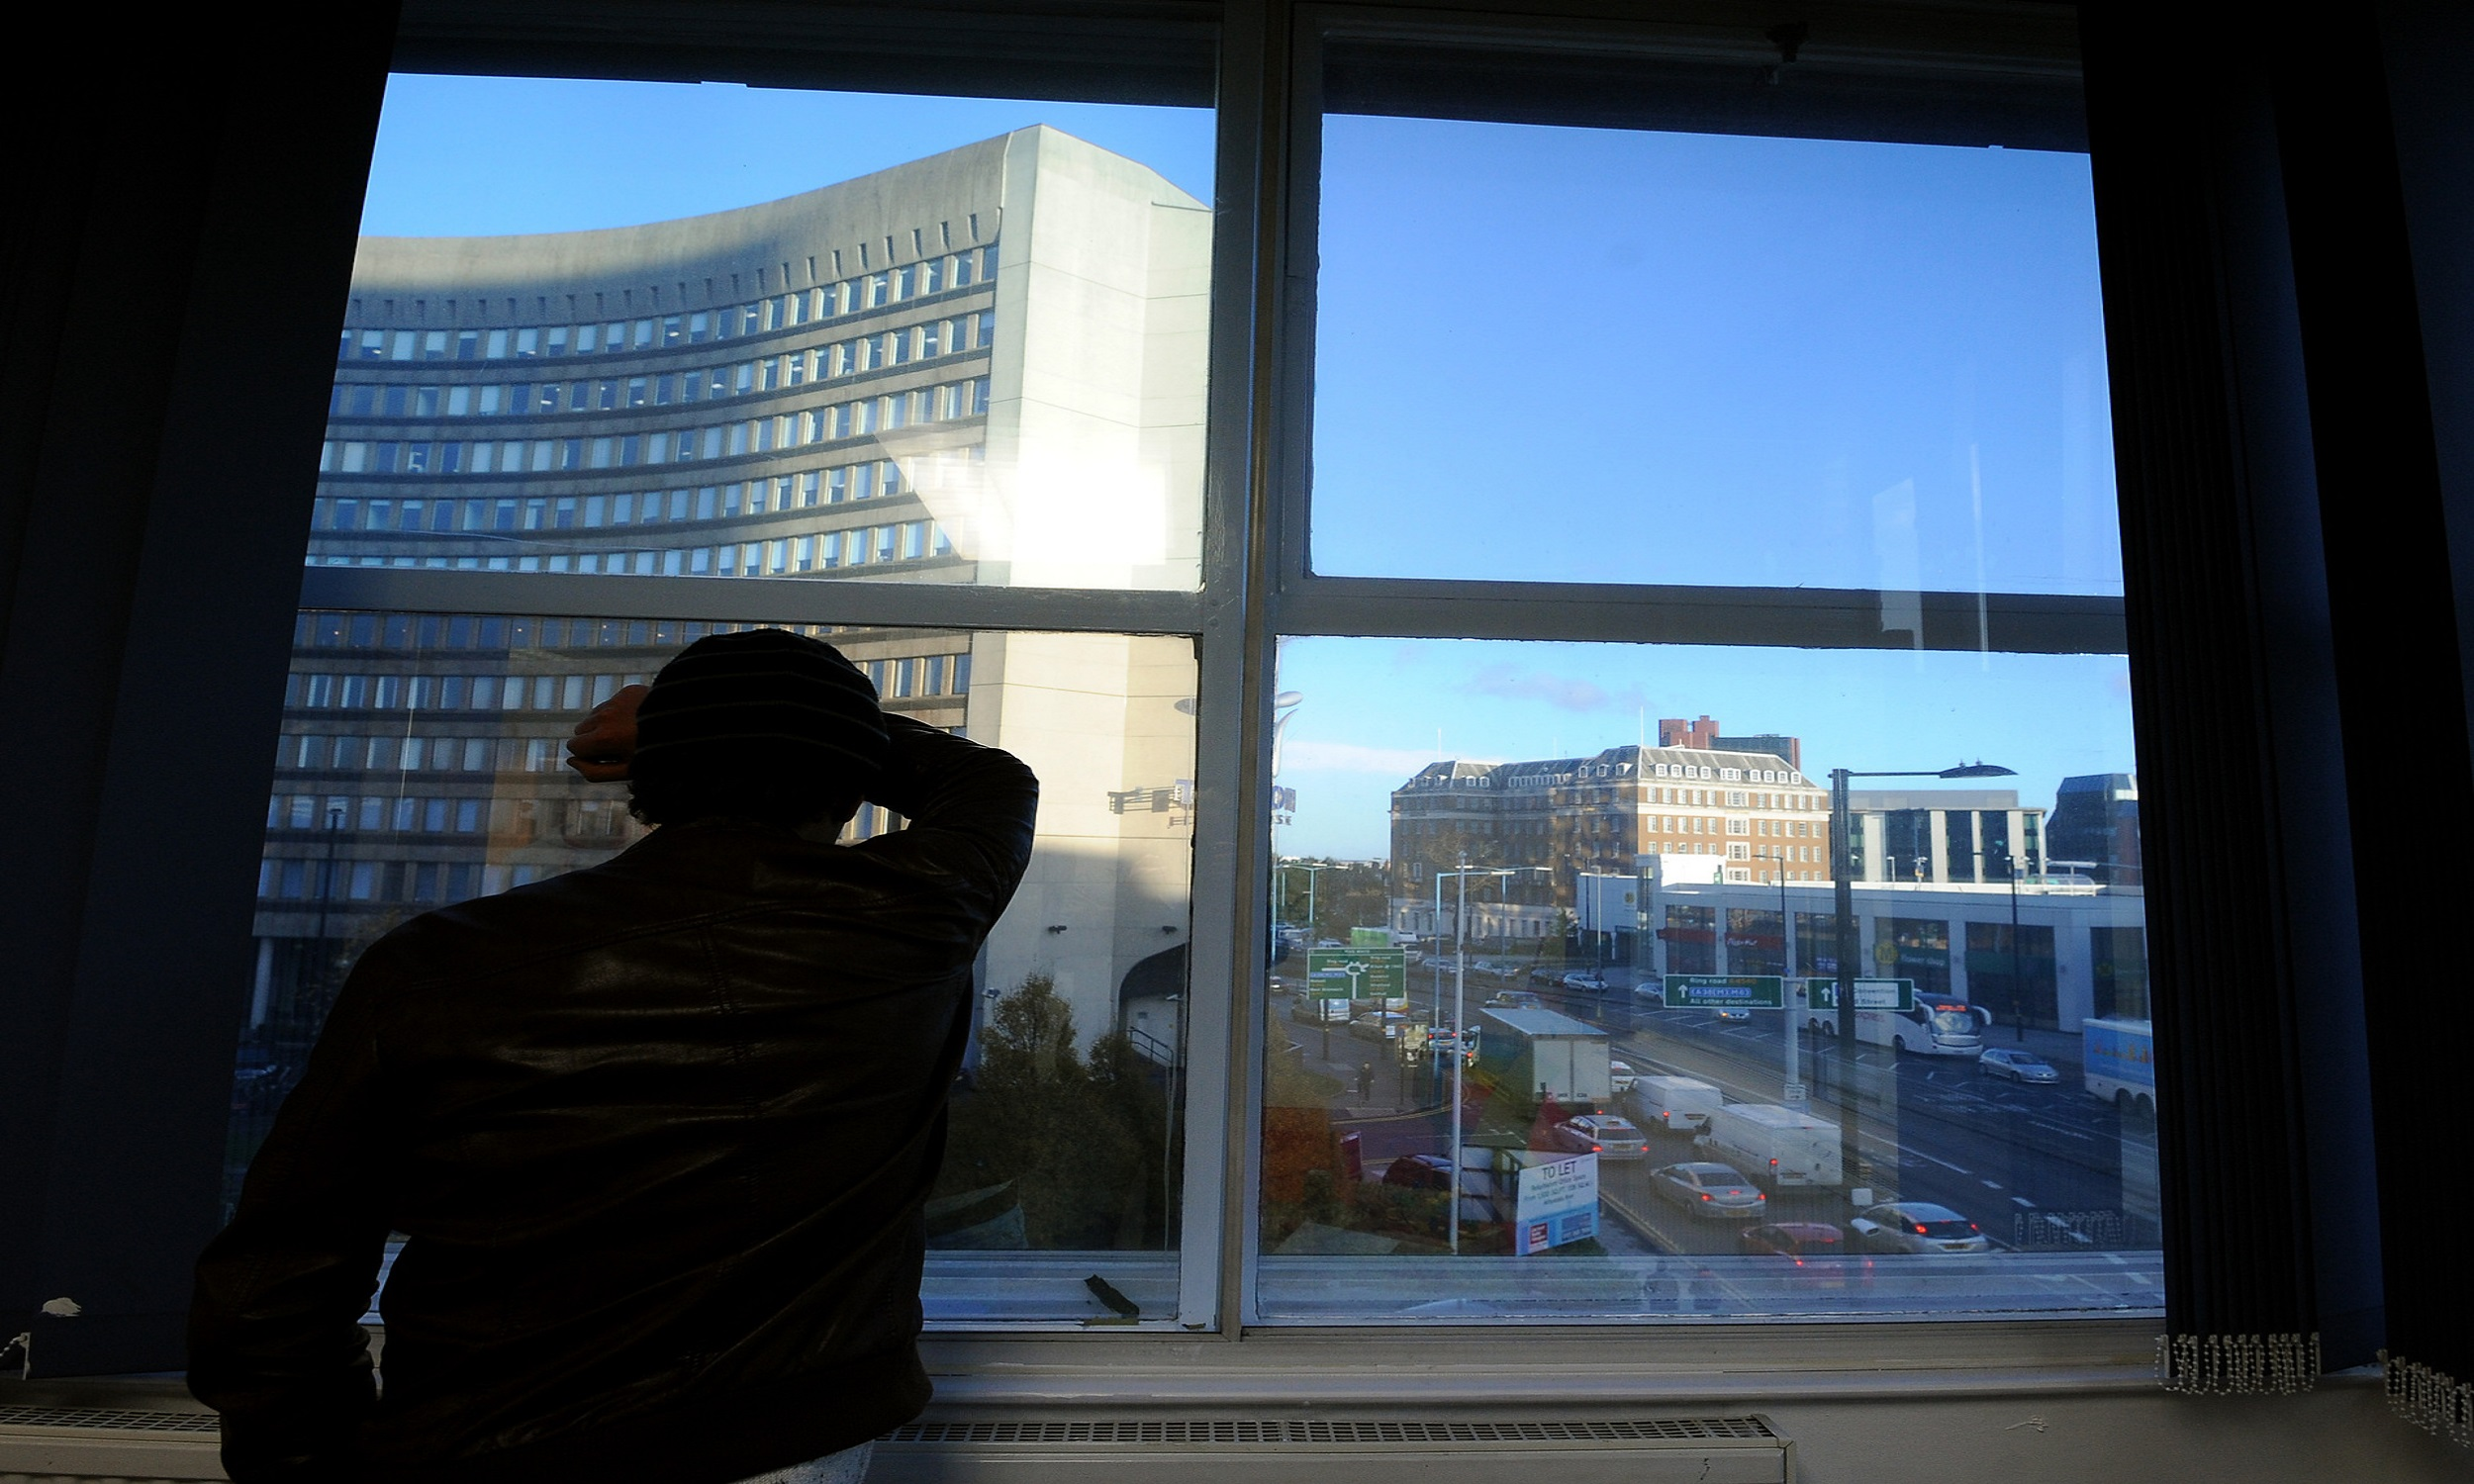 silhouette of man looking out of a window at cityscape